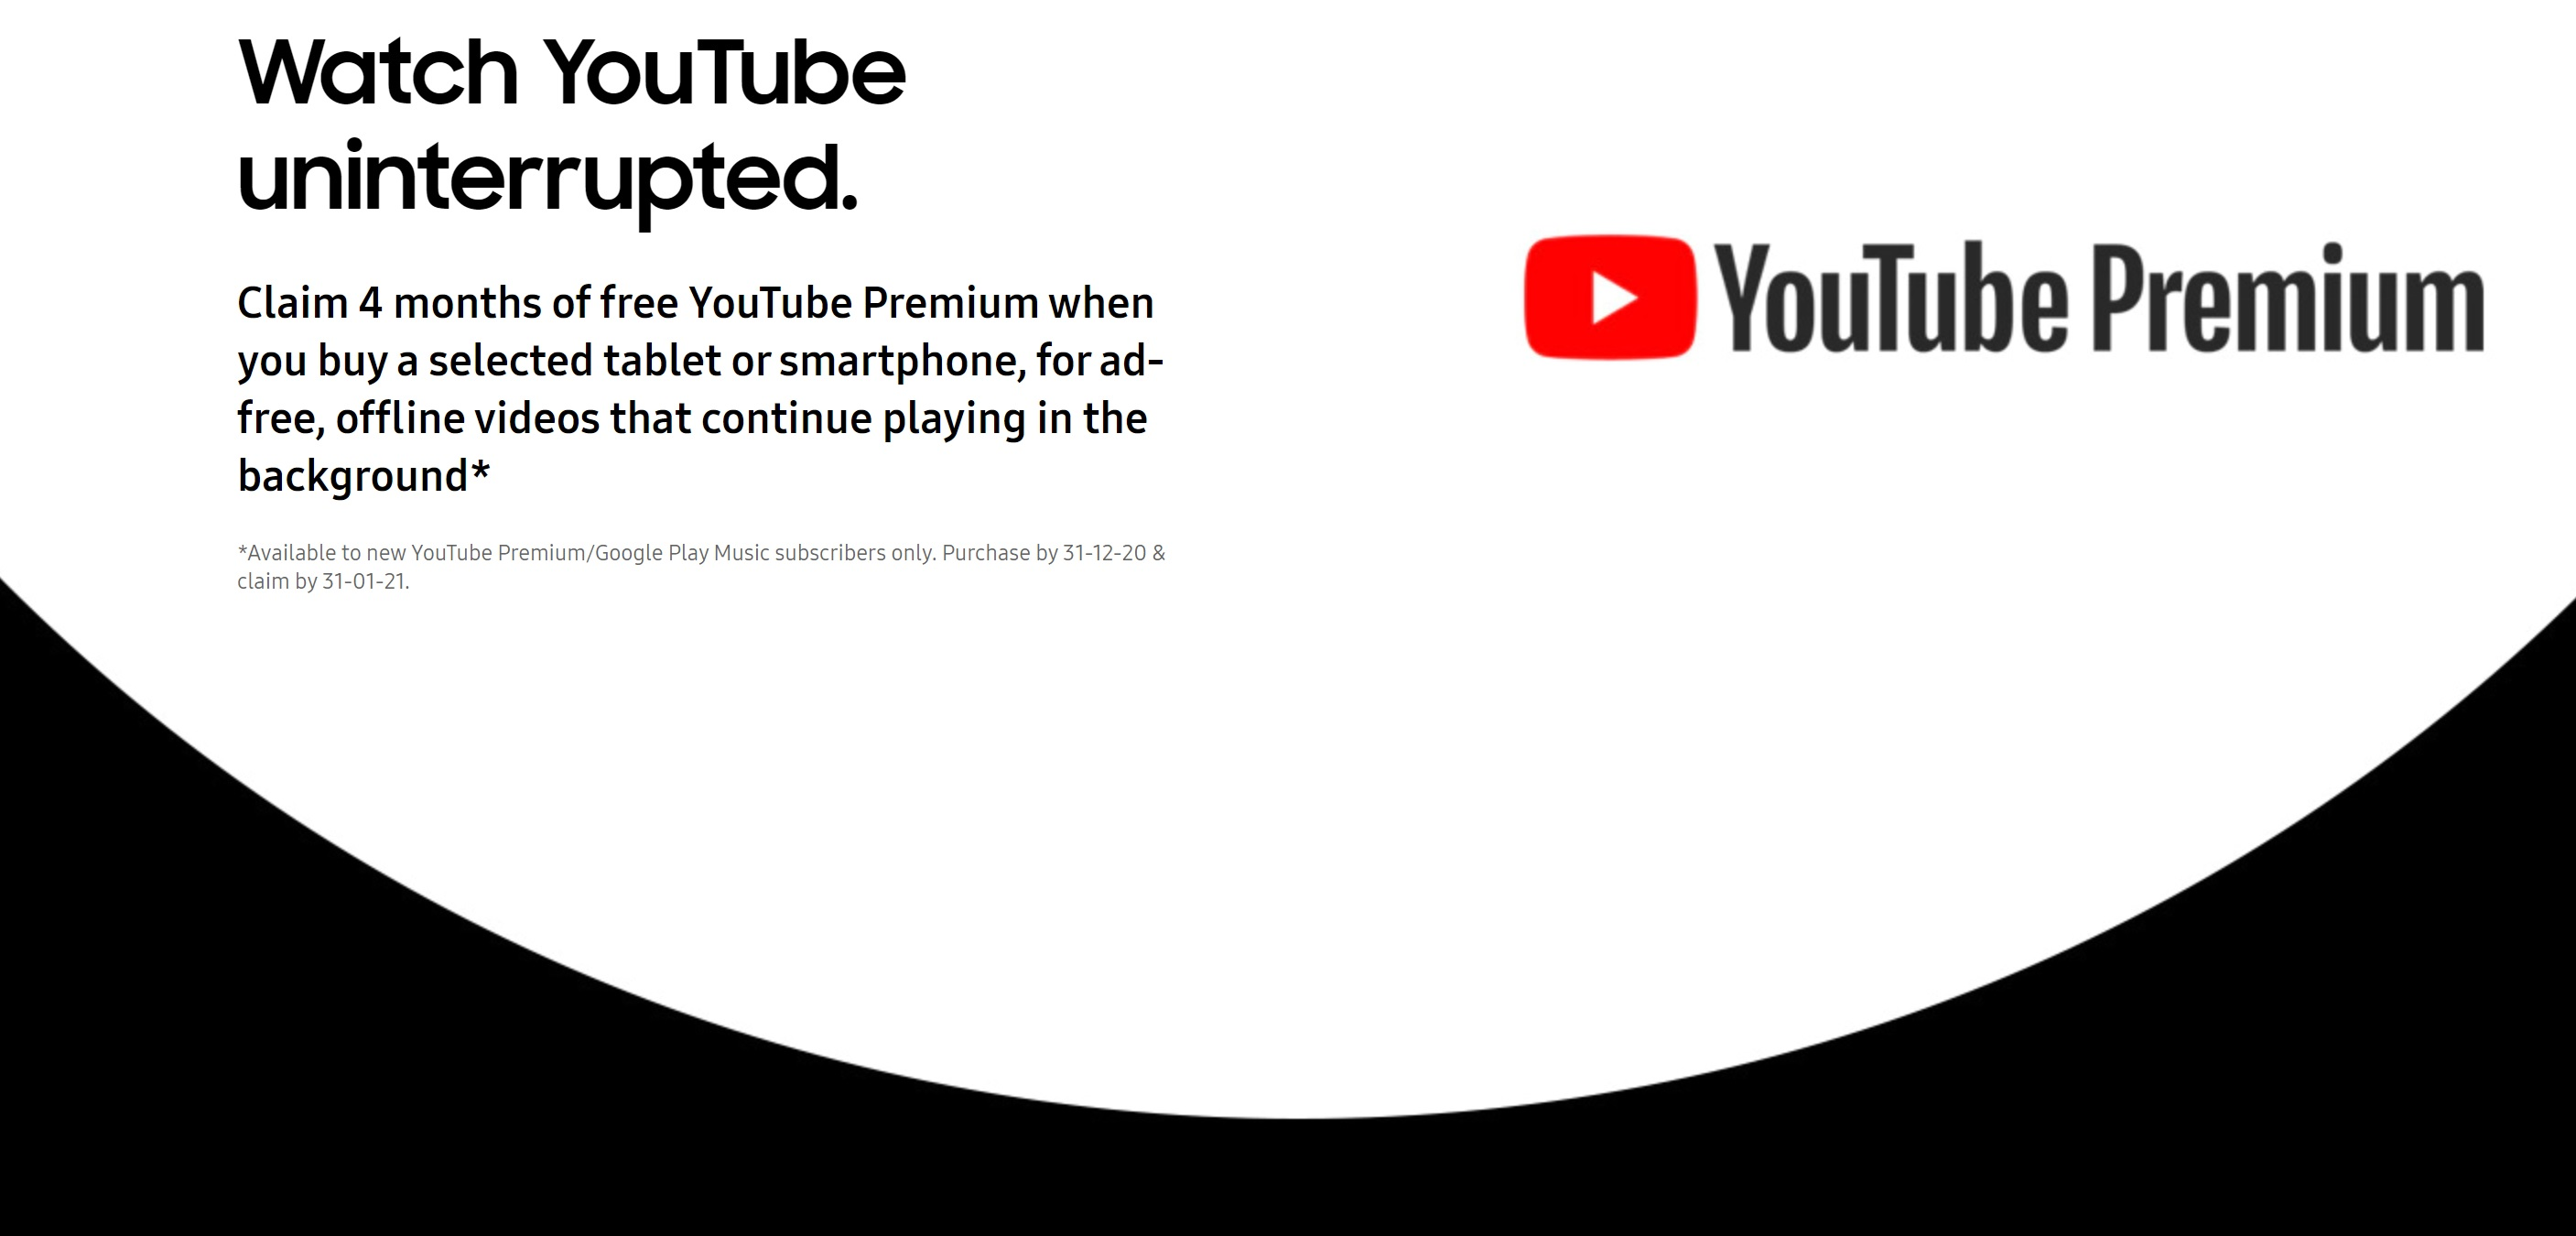 Samsung S20 and S20 Plus (S20+) deals with 4 months free YouTube Premium